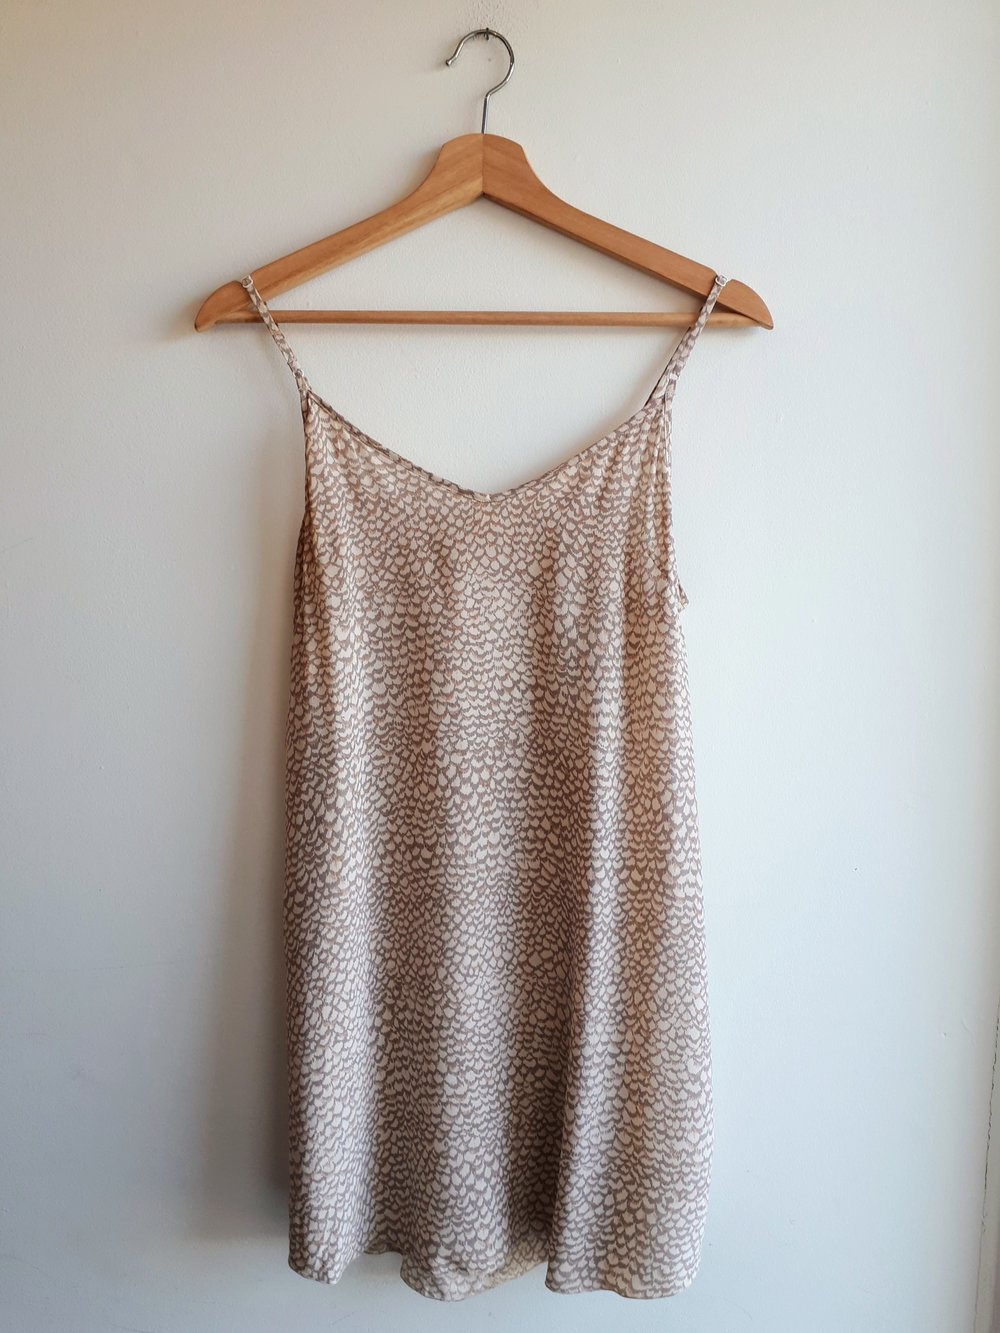 Wilfred dress; Size M, $36